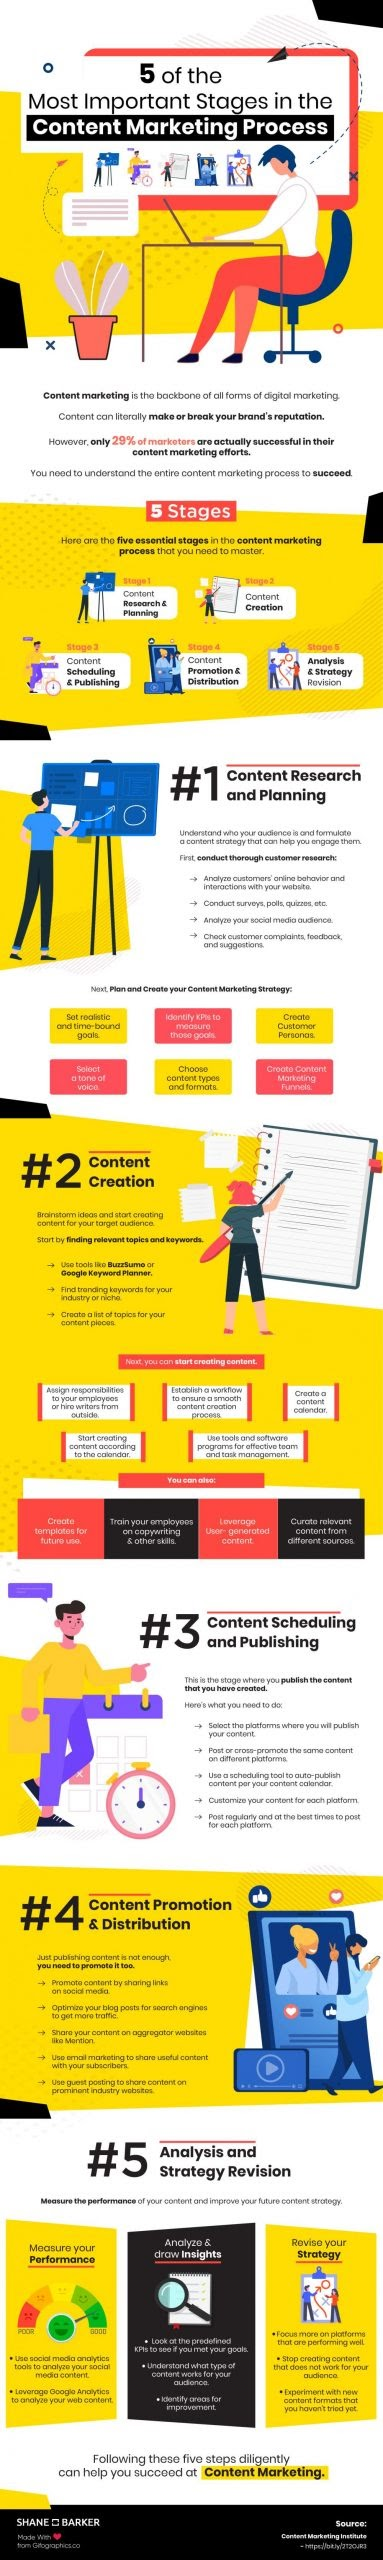 The importance of analysis and preparation in the process of content marketing #infographic